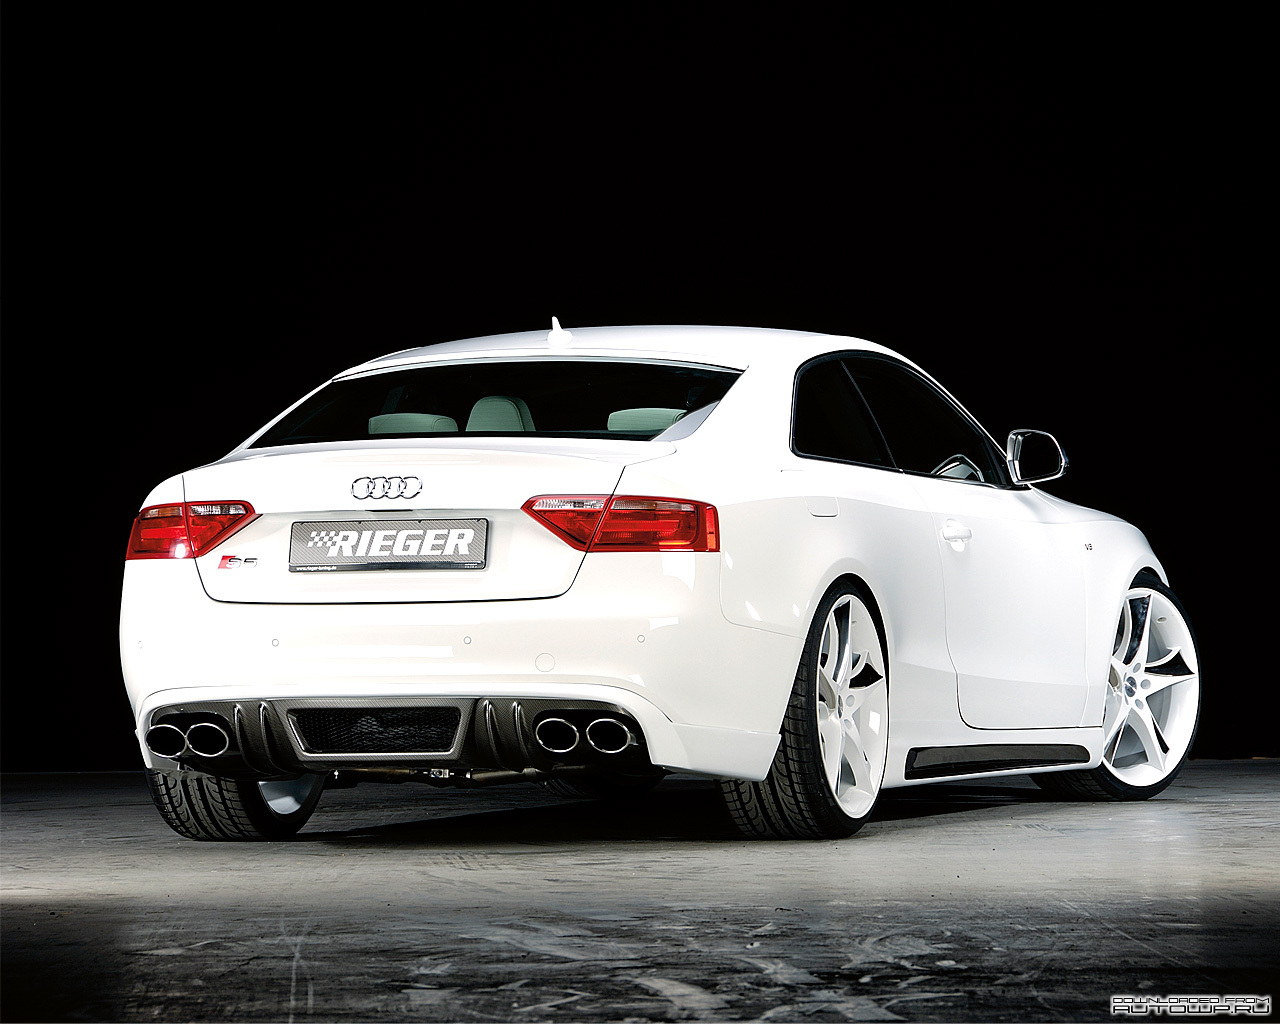 Audi s5 wallpaper Cars Wallpapers And Pictures car images,car pics,carPicture